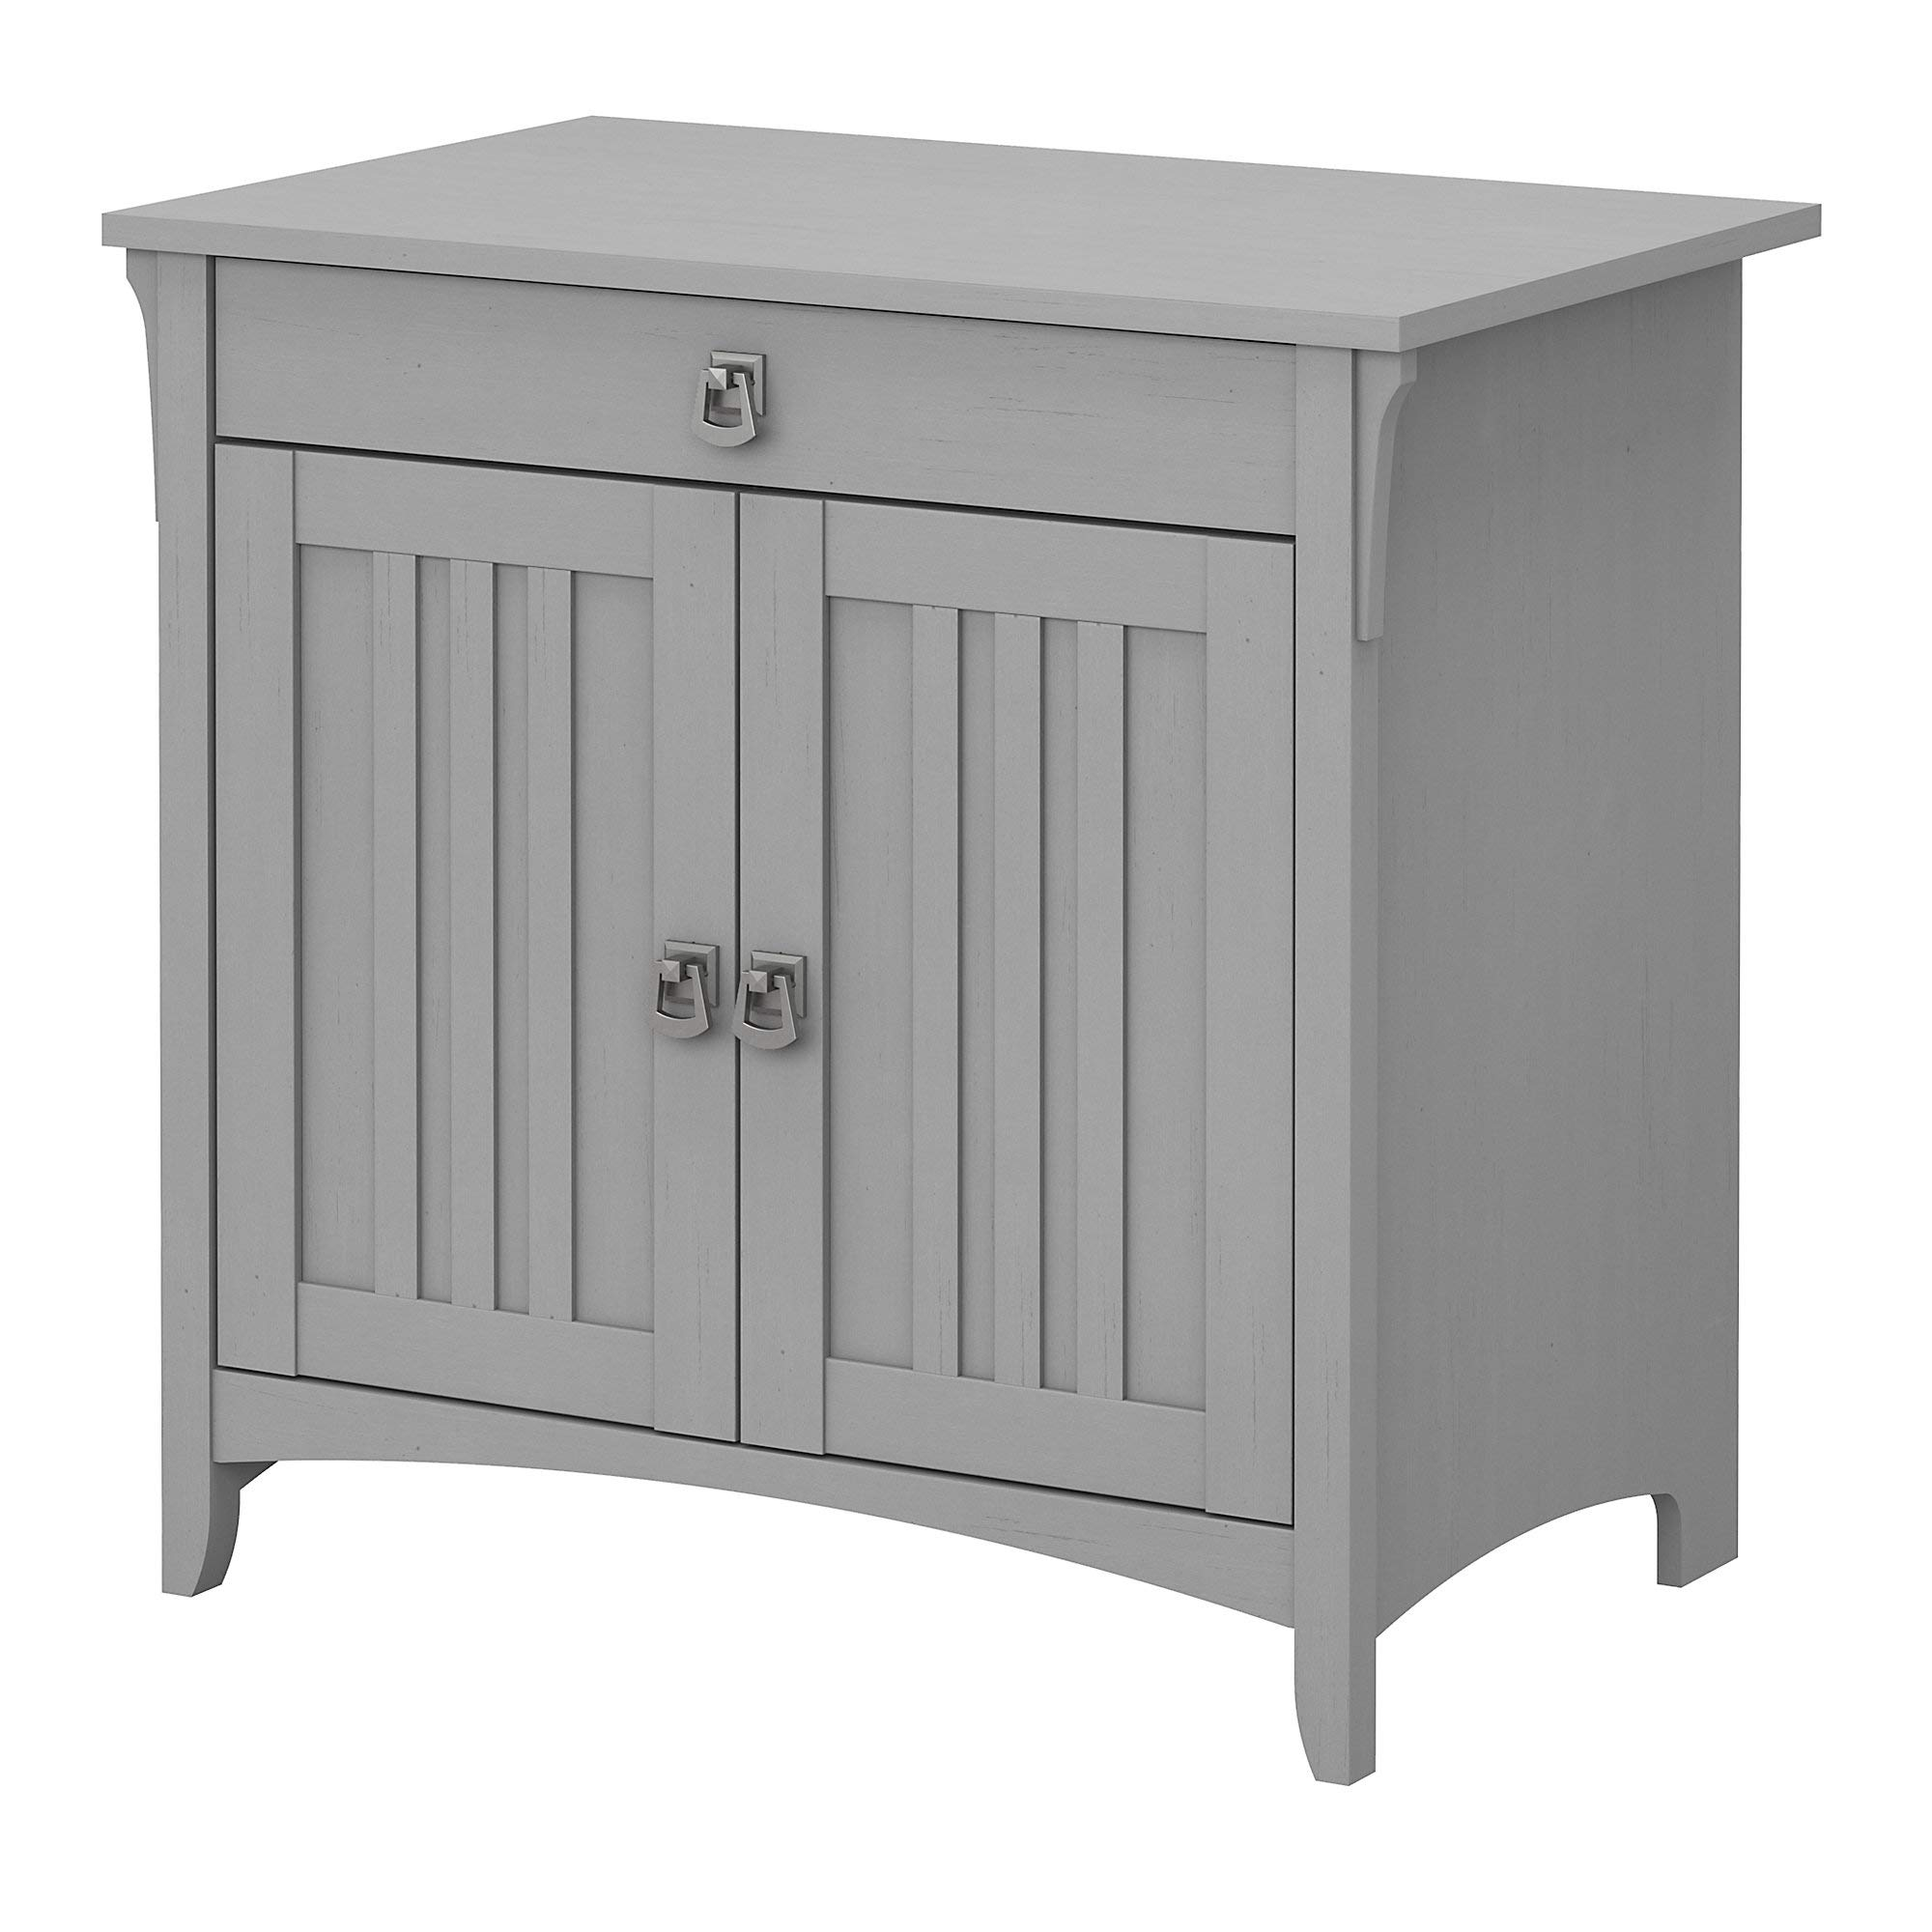 Bush Furniture Salinas Secretary Desk with Keyboard Tray and Storage Cabinet in Cape Cod Gray by Bush Furniture